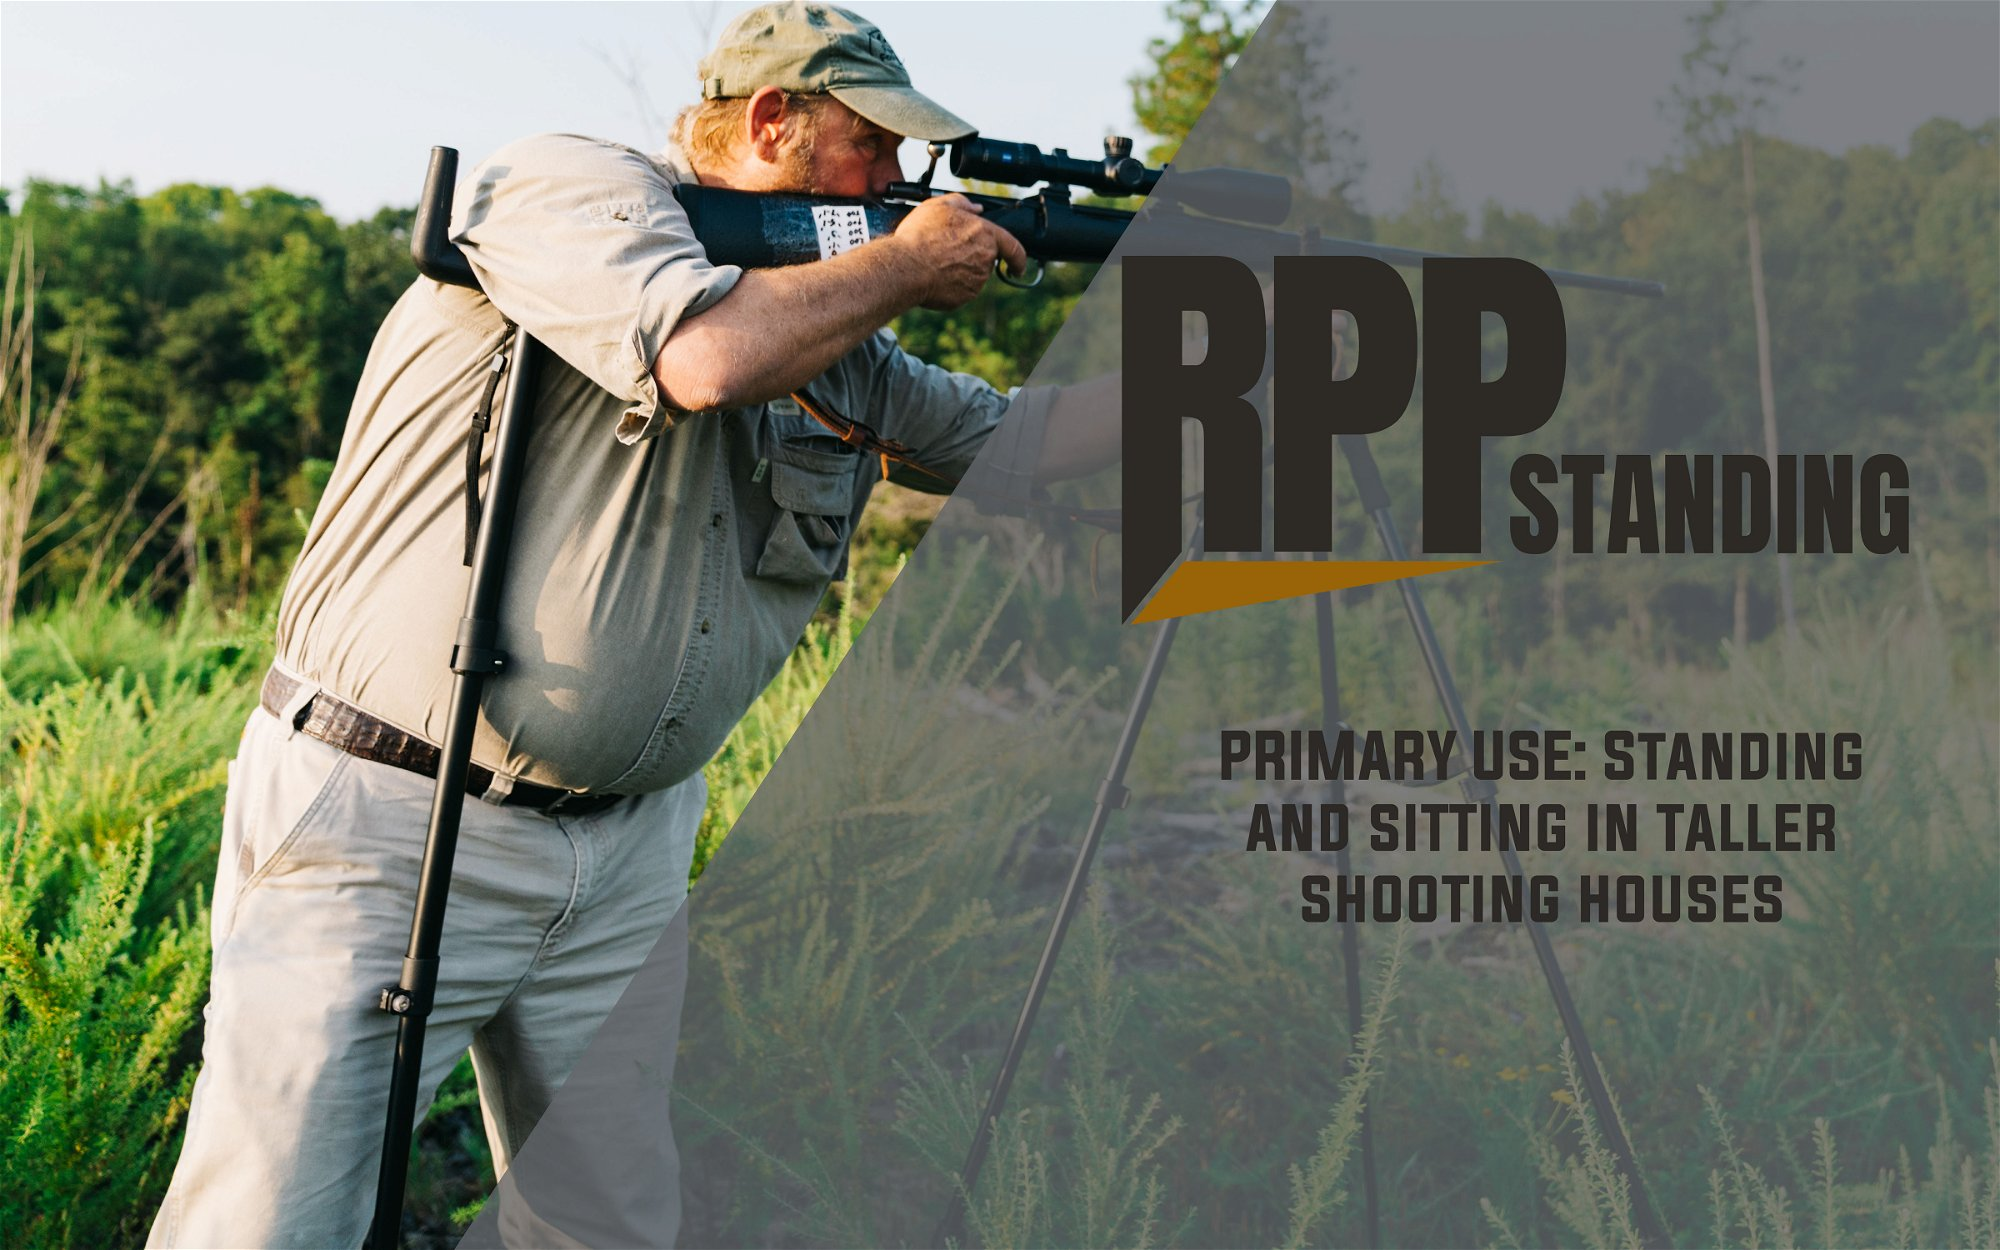 RPP Standing - Primary Use: Standing and Sitting in Taller Shooting Houses